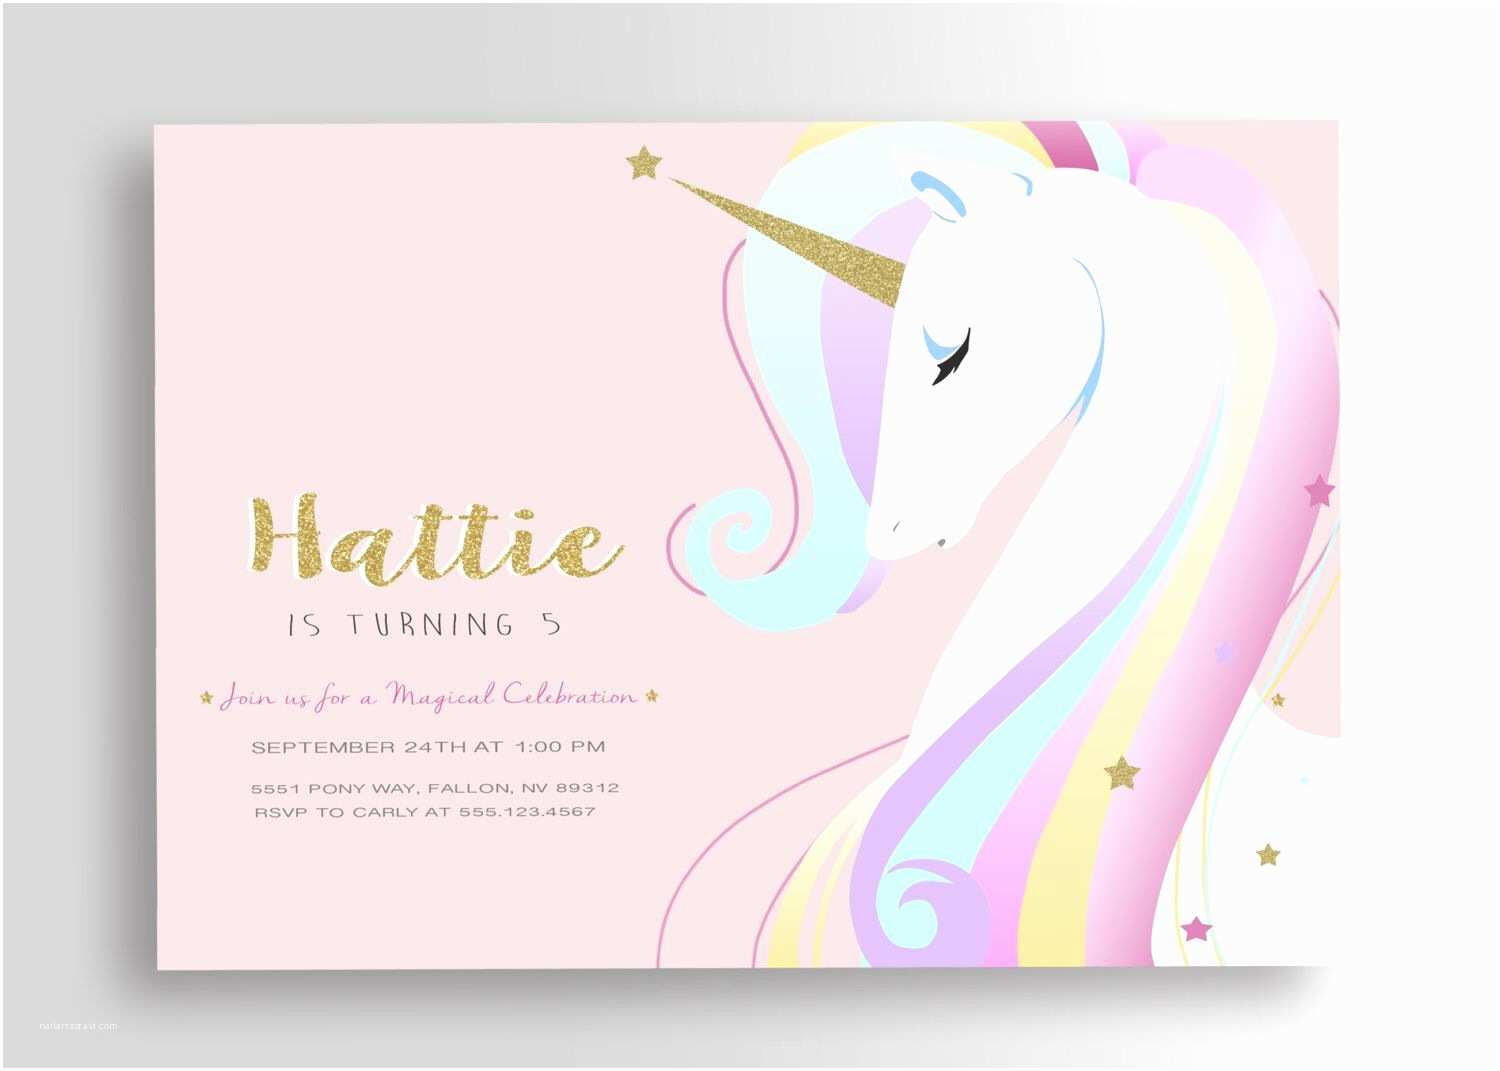 Unicorn Birthday Invitations Unicorn Birthday Invitation Unicorn Invitation Unicorn